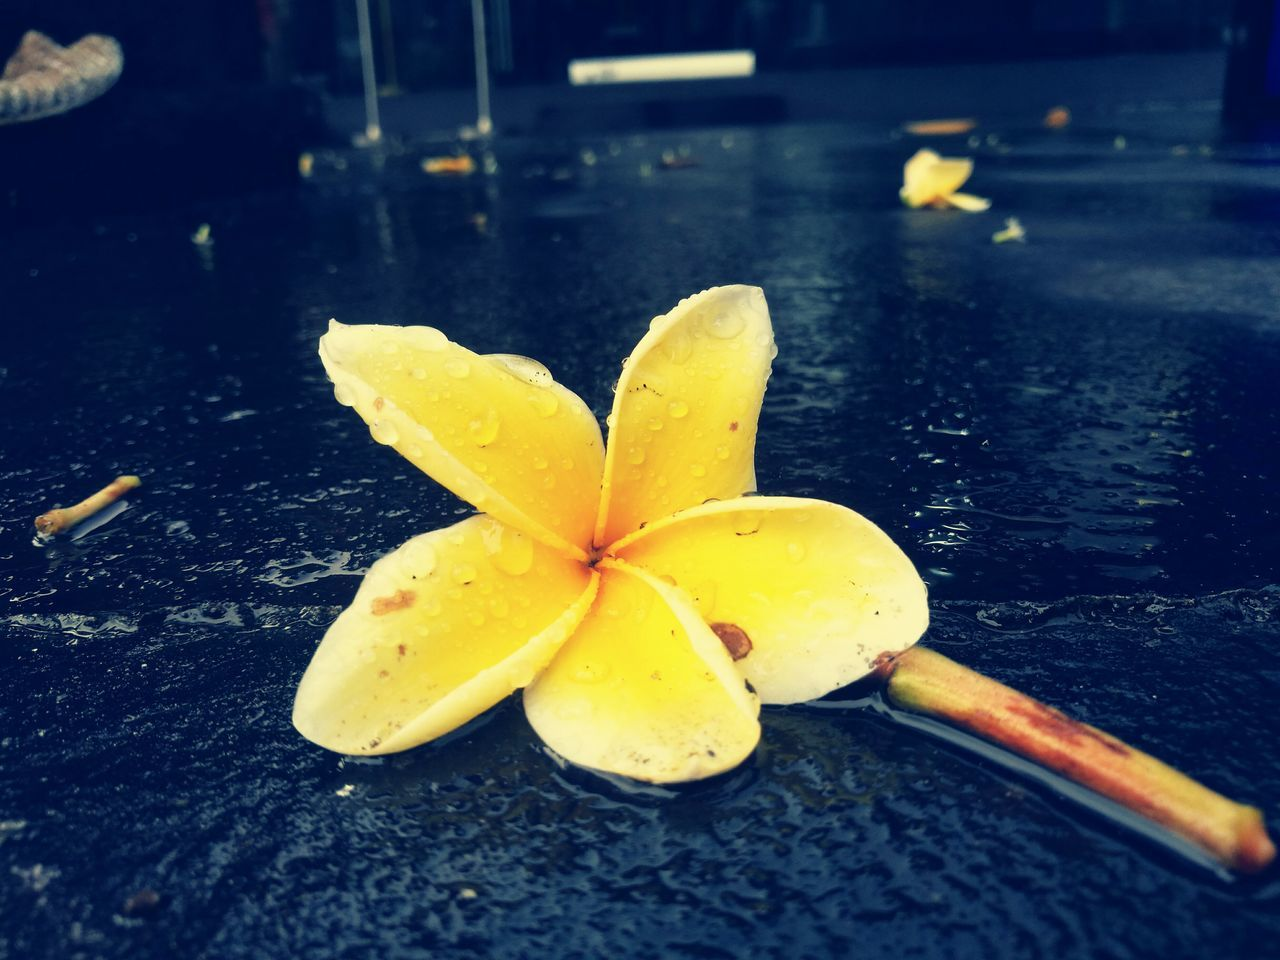 Frangipani Collection Frangipani In The Rain Yellow And Blue My Kind Of Art Personal Perspective Holiday Trip Bali, Indonesia Good Old Times Melancholia Love ♥ HuaweiP9